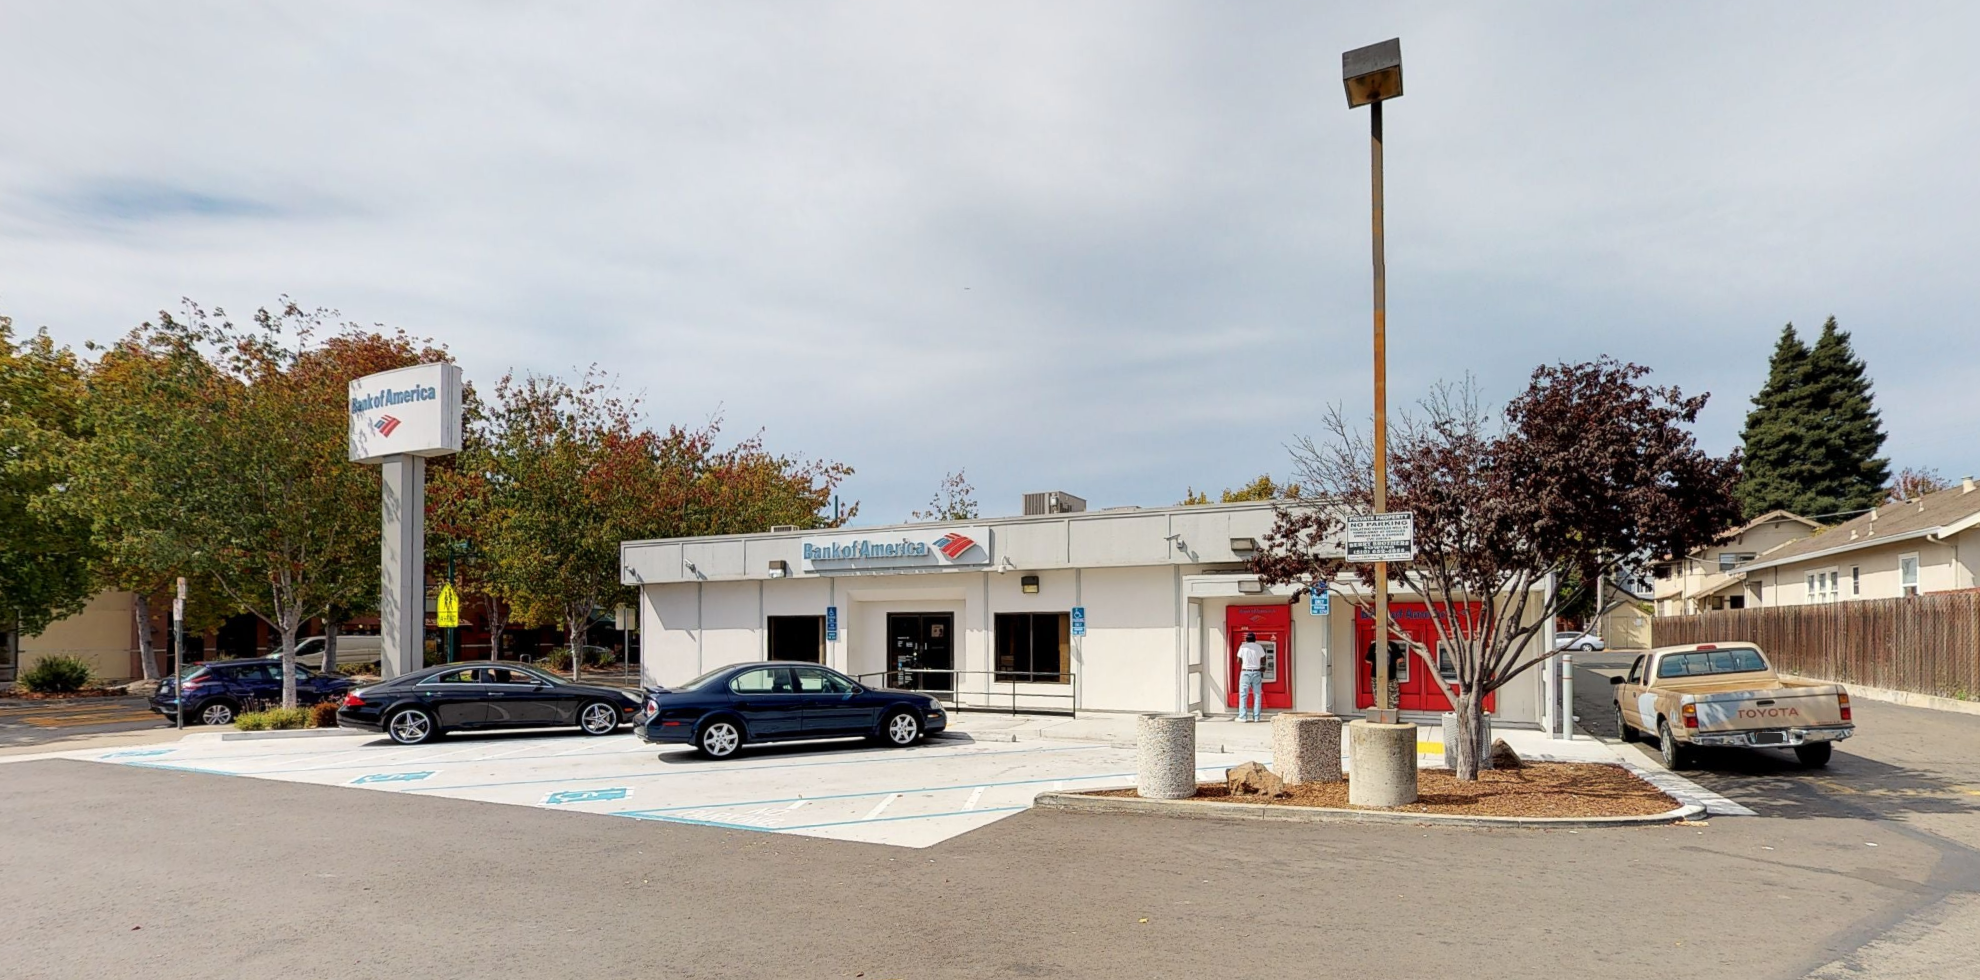 Bank of America financial center with walk-up ATM | 4120 San Pablo Ave, Emeryville, CA 94608